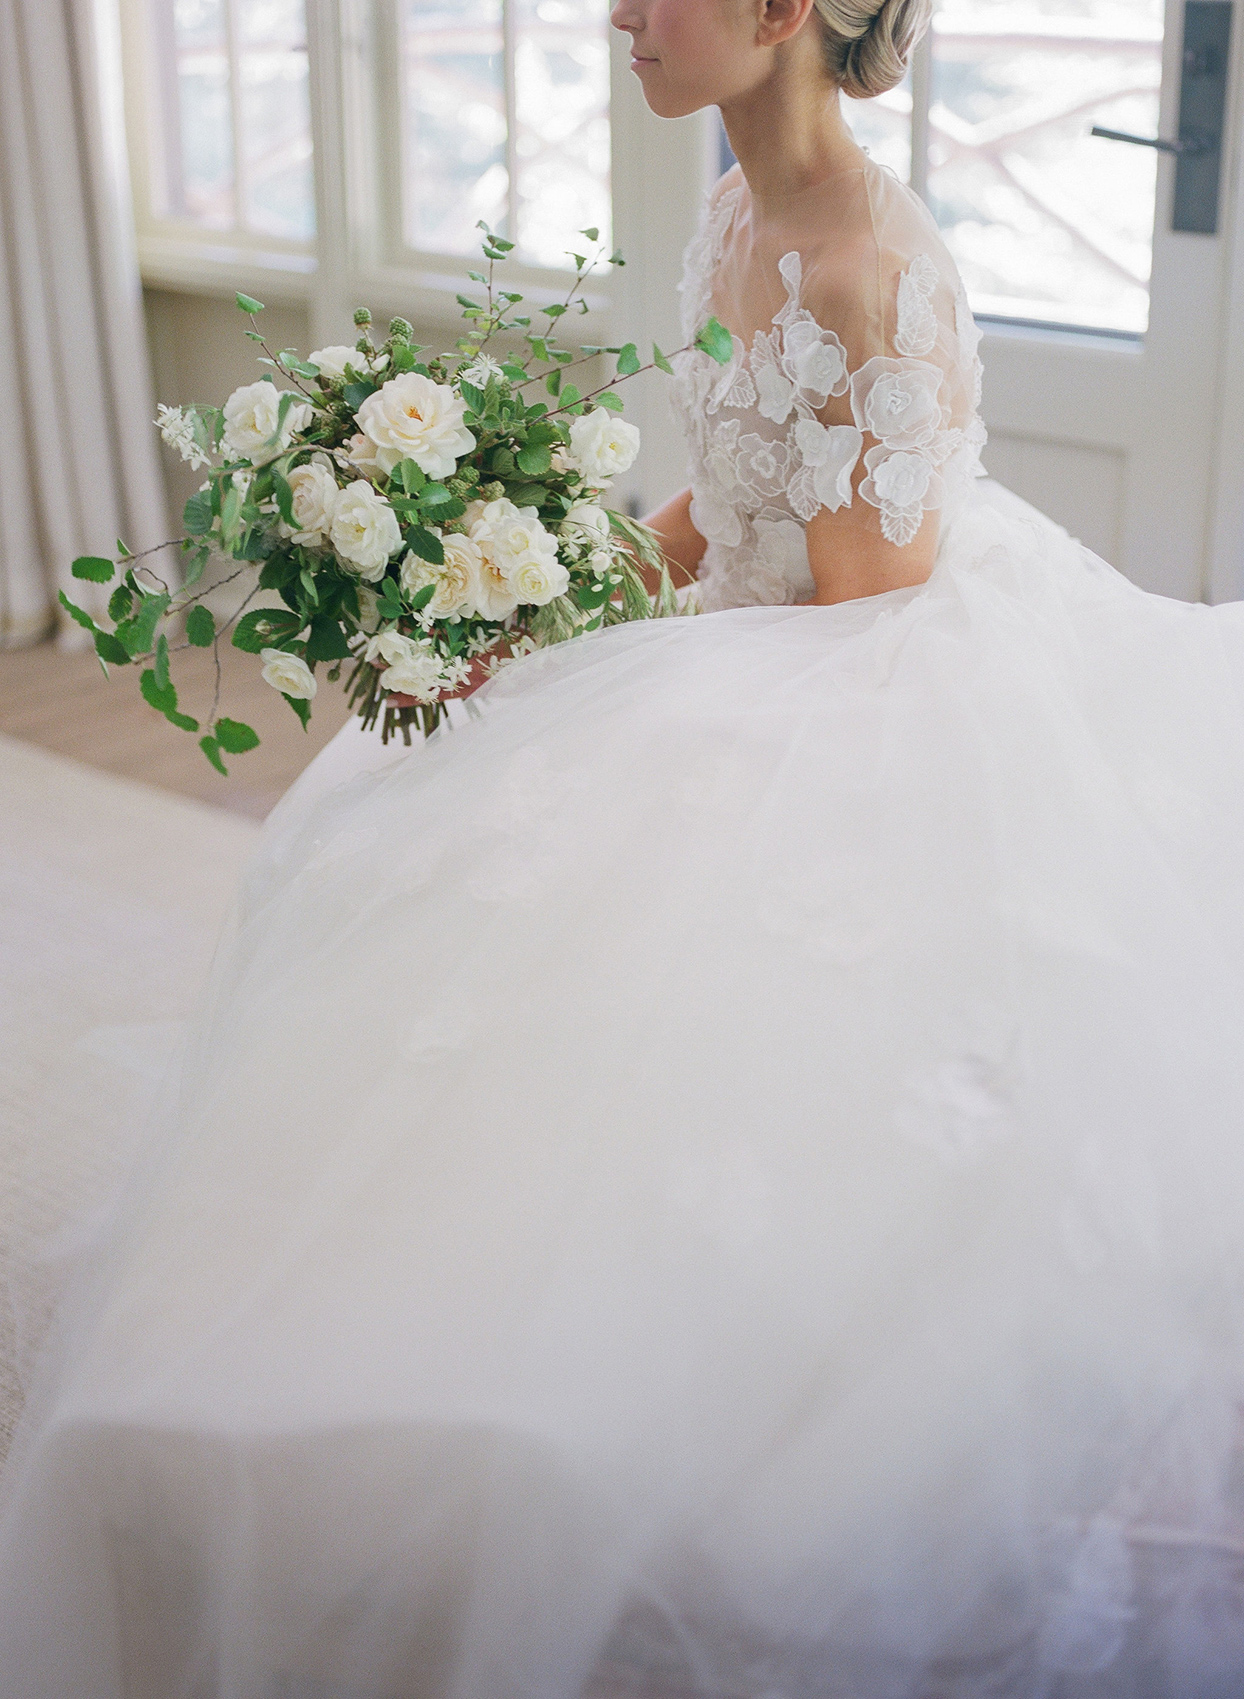 bride in fluffy dress sitting with bouquet